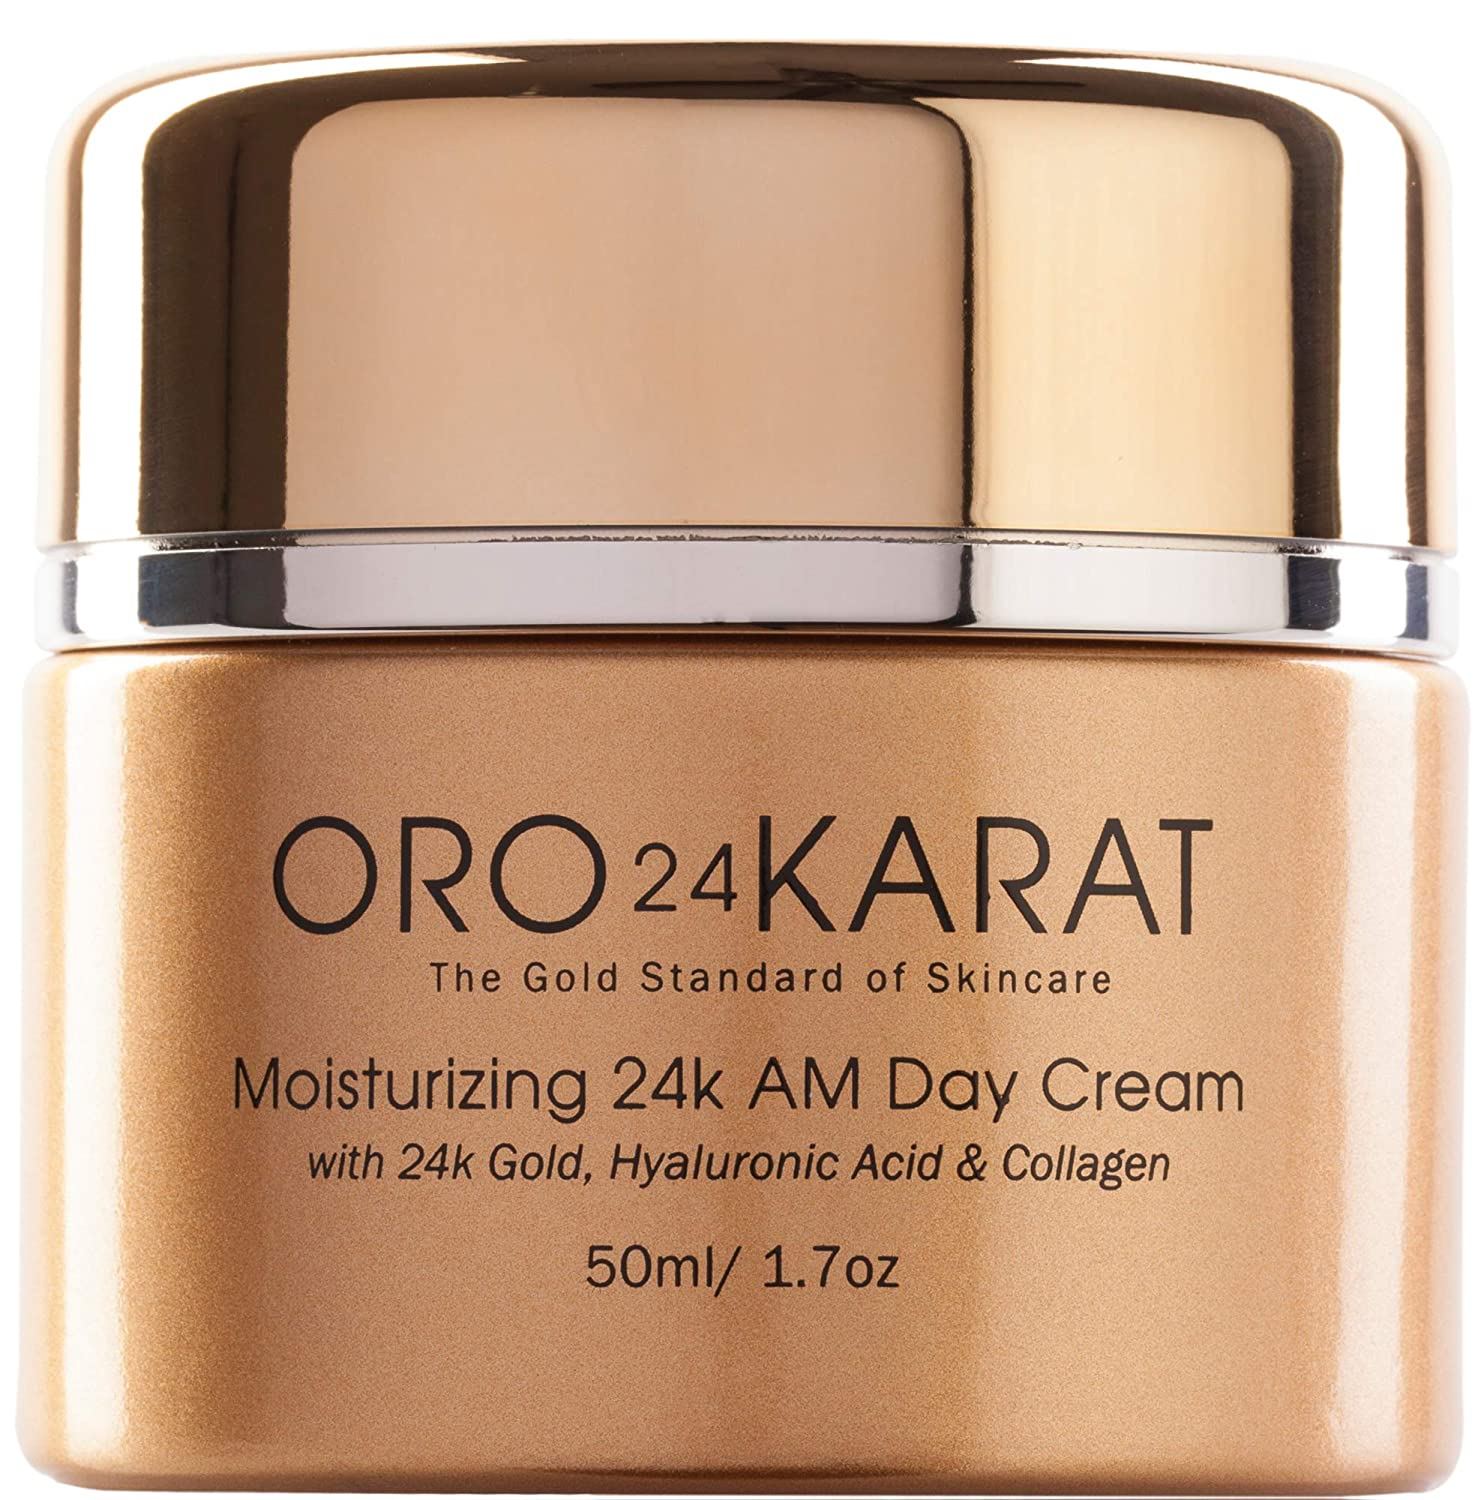 ORO24KARAT Moisturizing Day Cream with 24k Gold, Anti-Aging with Vitamins, Hyaluronic Acid, Collagen